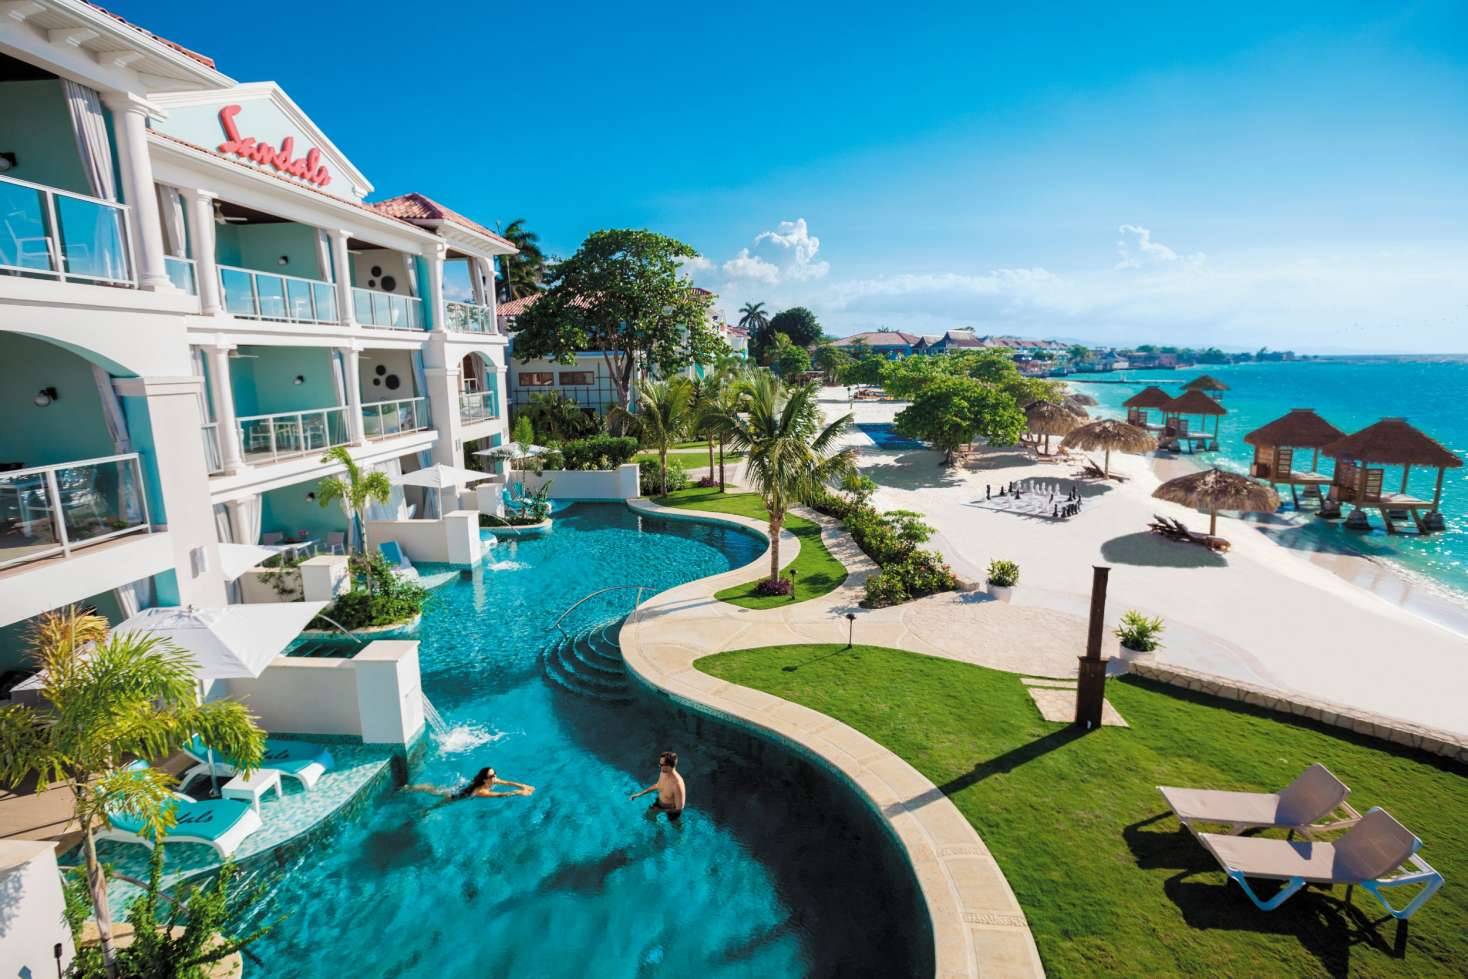 FREE Catamaran Tour and FREE Luxury Included® Privileges at Sandals Montego Bay